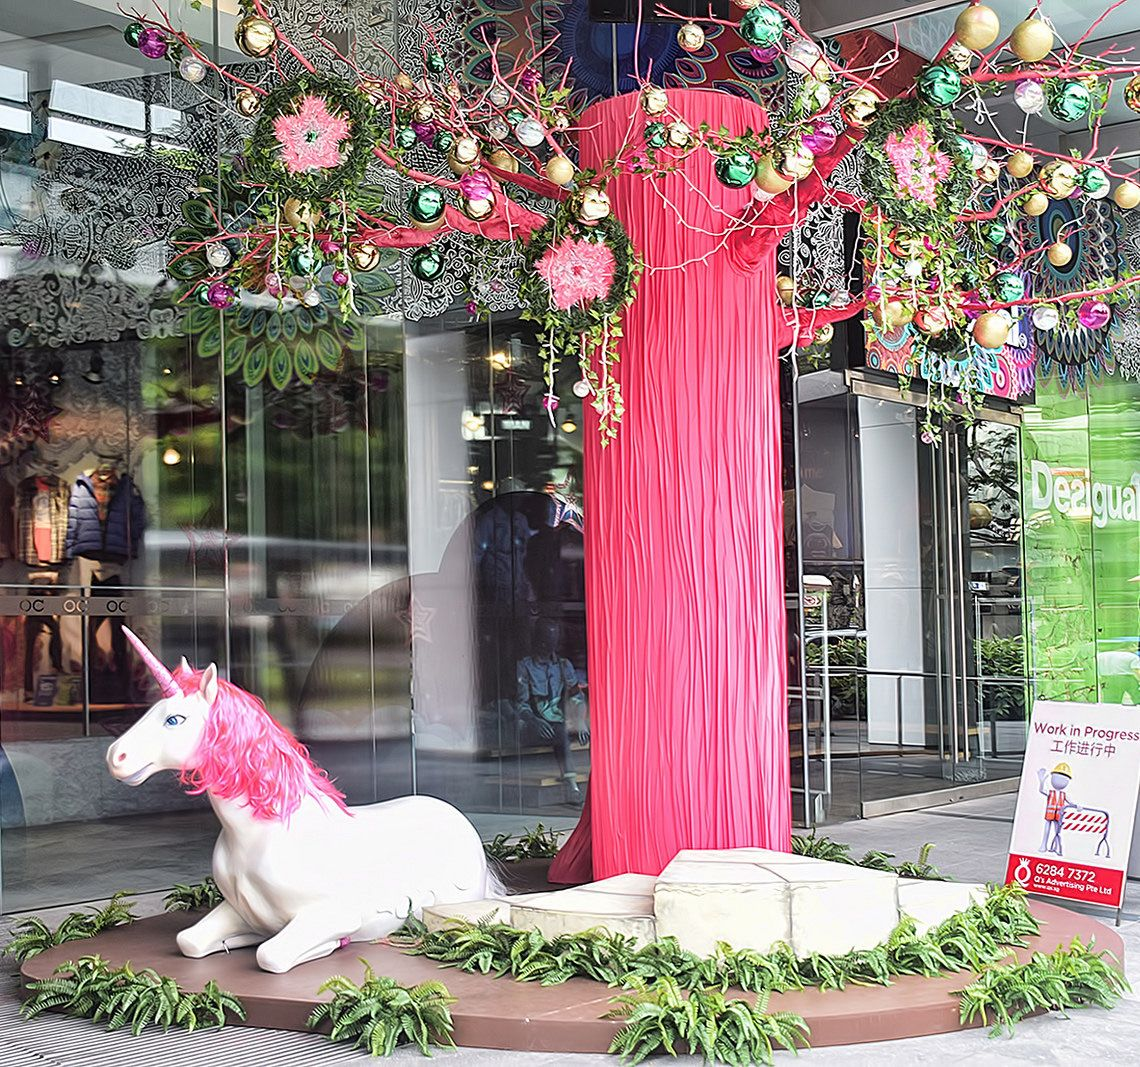 Christmas Decorations Store In Singapore: This Christmas Decoration Of A Pink Tree And Goat Can Be